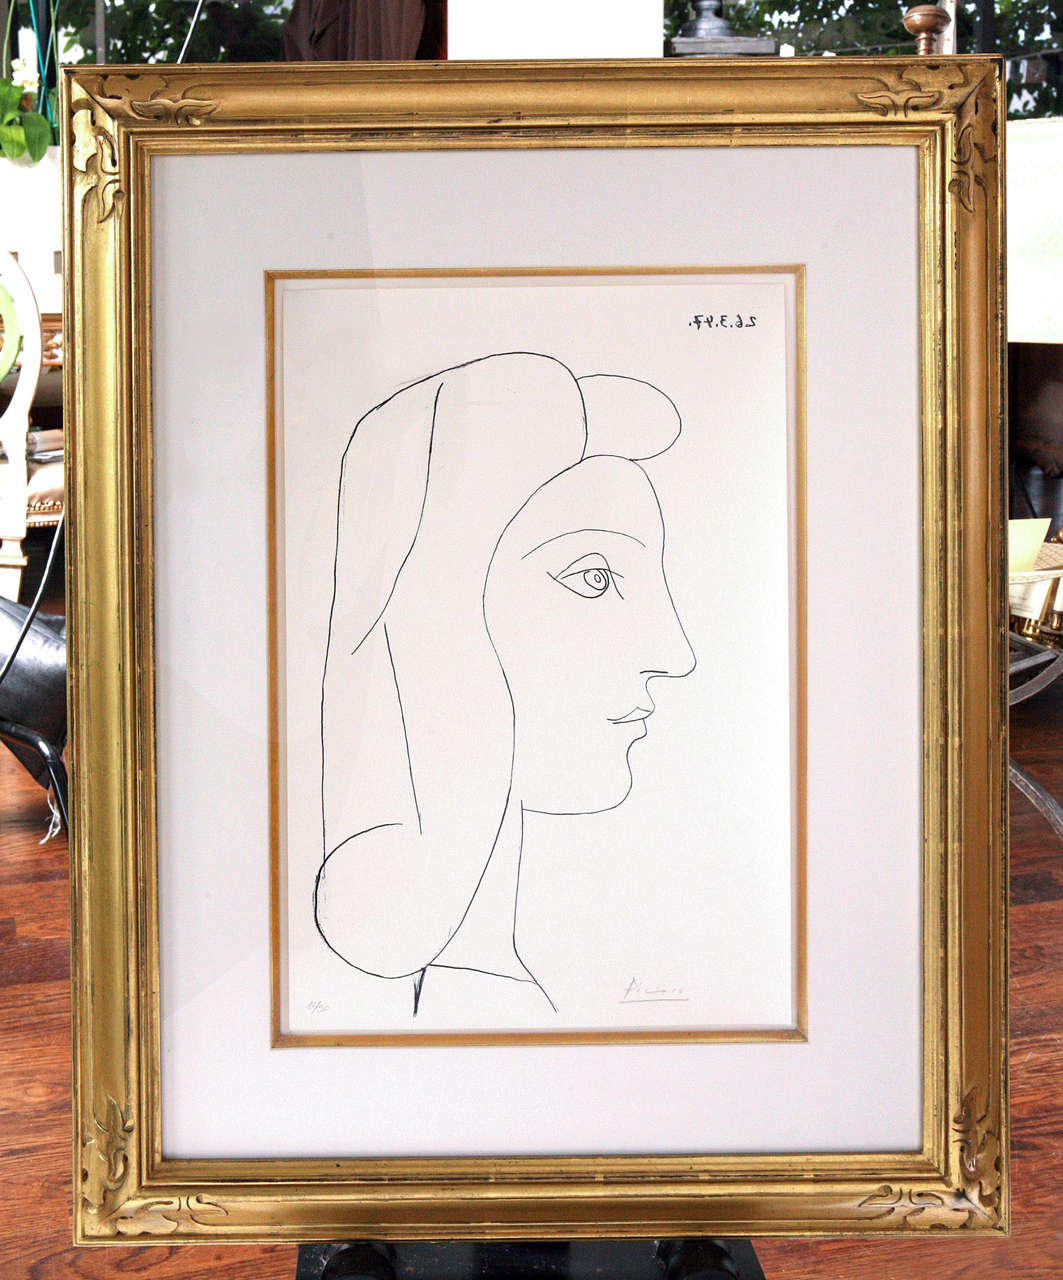 Picasso lithograph of Francoise, [Profil de Femme] 1947.  Signed, lower right, in pencil.  Hinged in frame.  Gilt frame.  Image size: 15